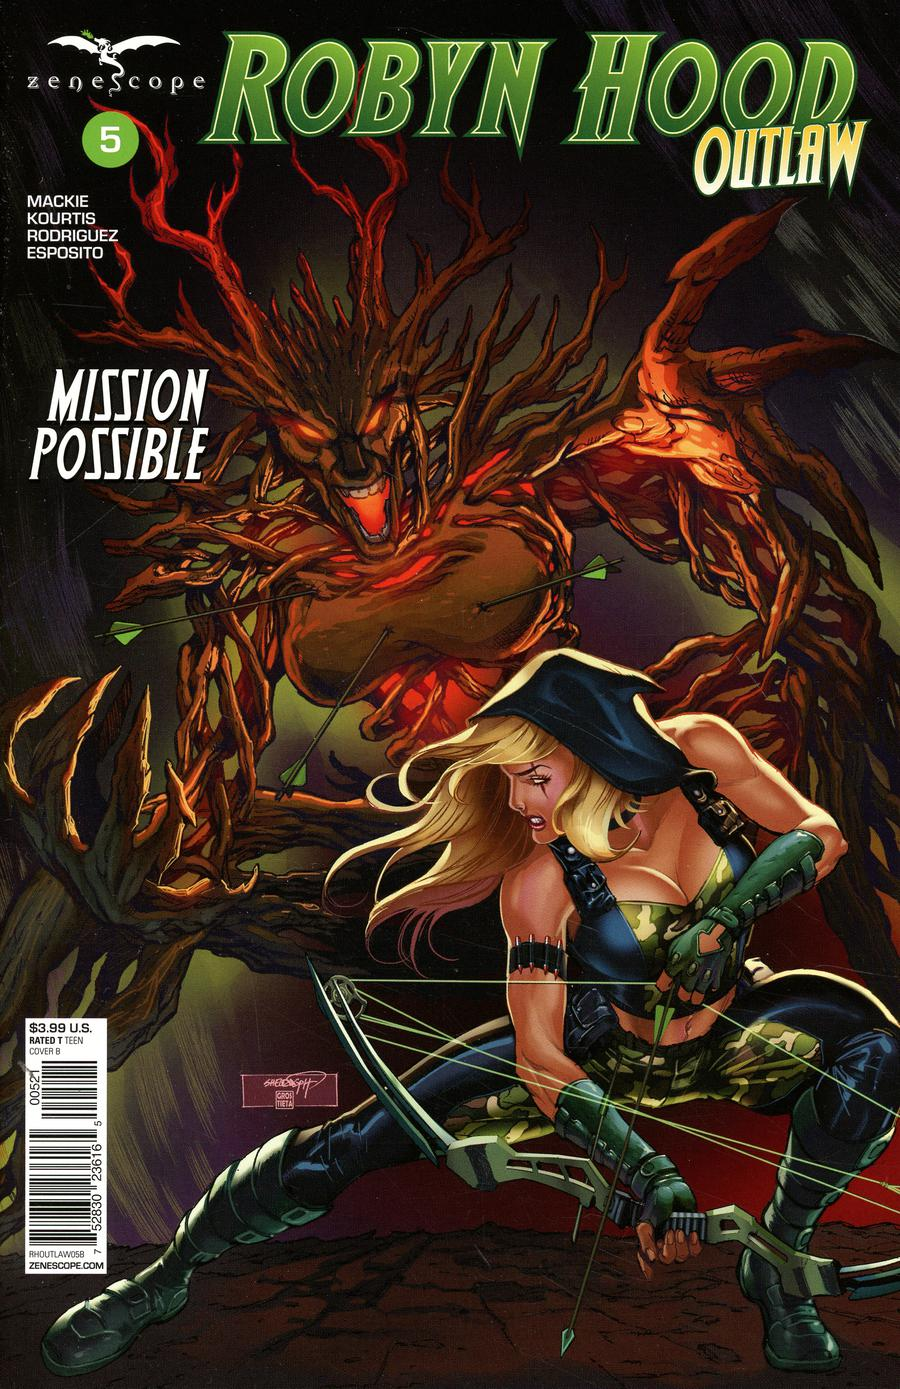 Grimm Fairy Tales Presents Robyn Hood Outlaw #5 Cover B Sheldon Goh